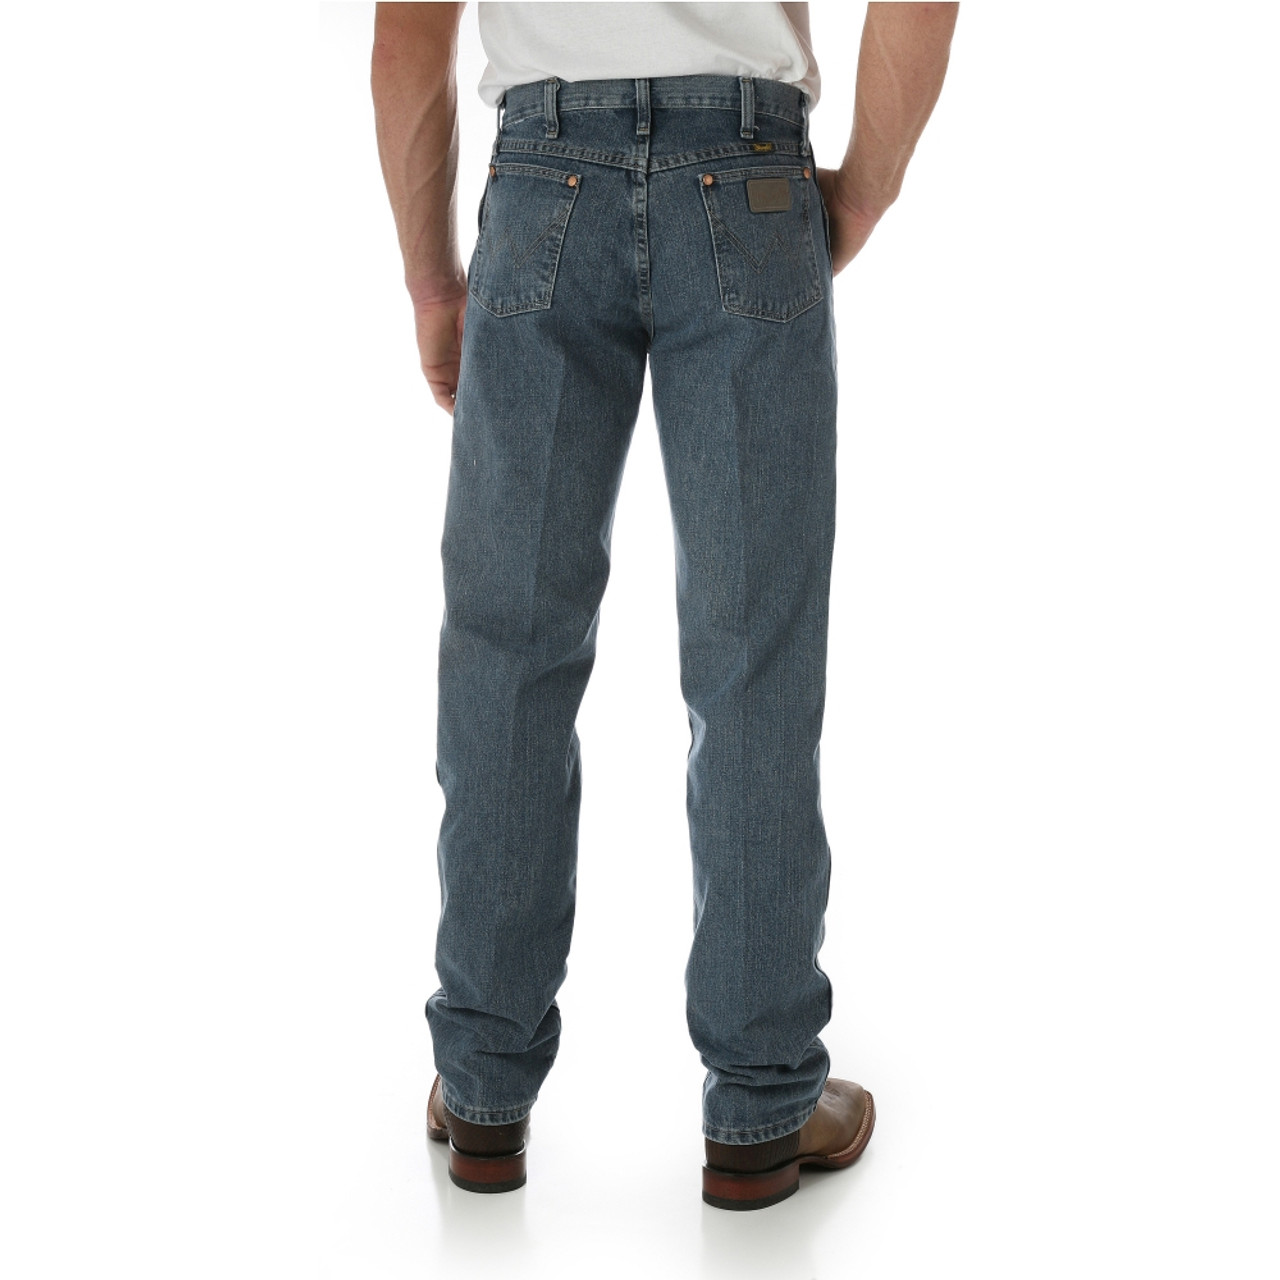 caf28cc1701 Wrangler Men's Original Fit Rough Stone Jeans - Herbert's Boots and Western  Wear